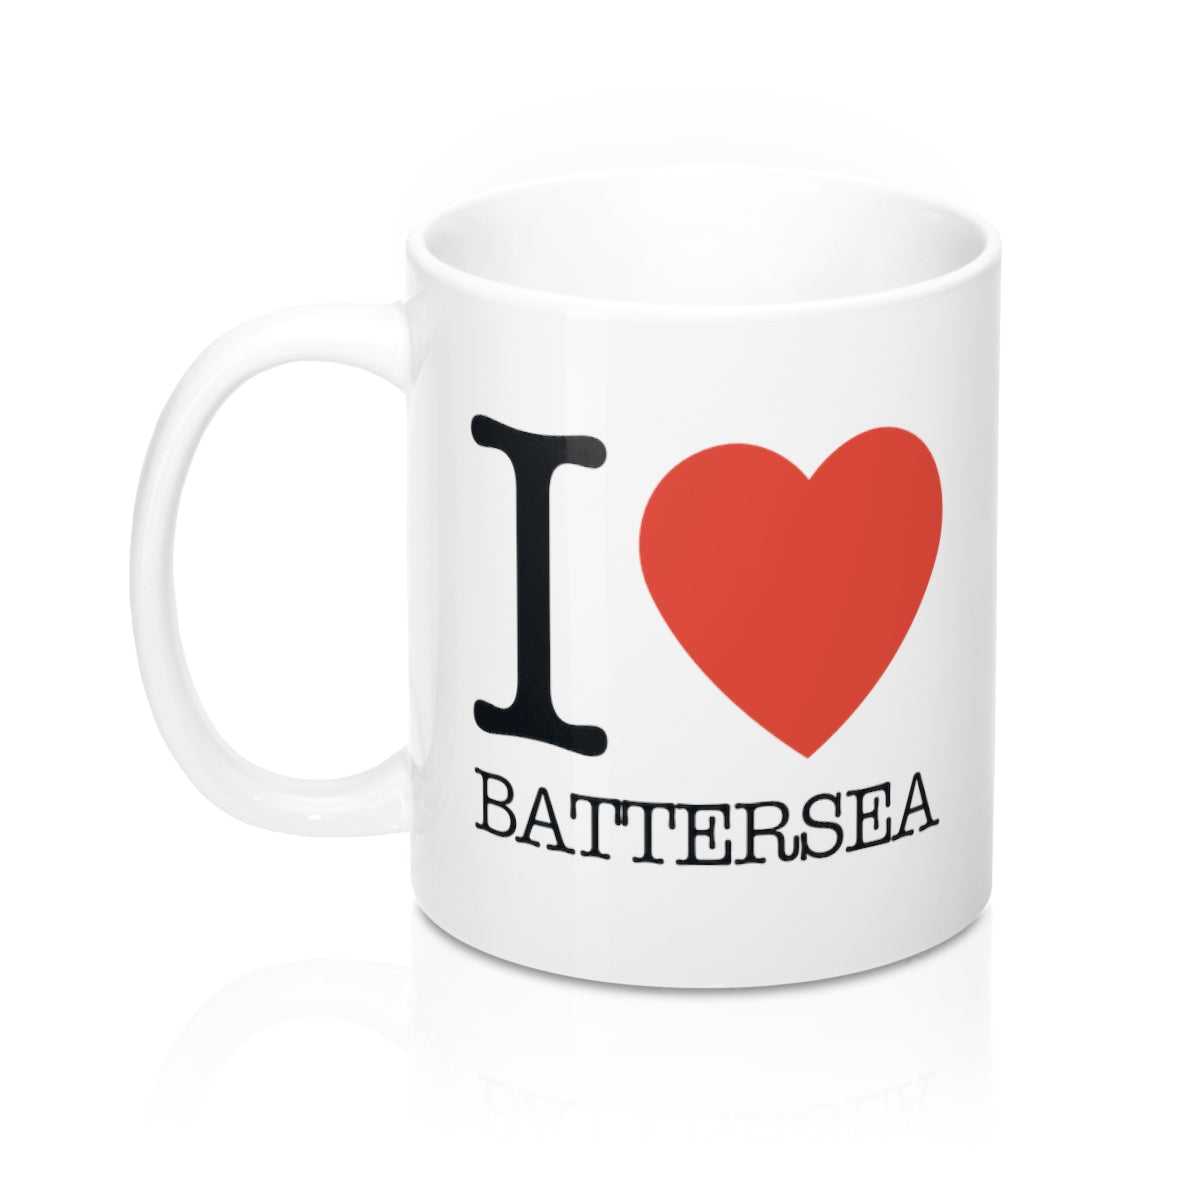 I Heart Batterea Mug